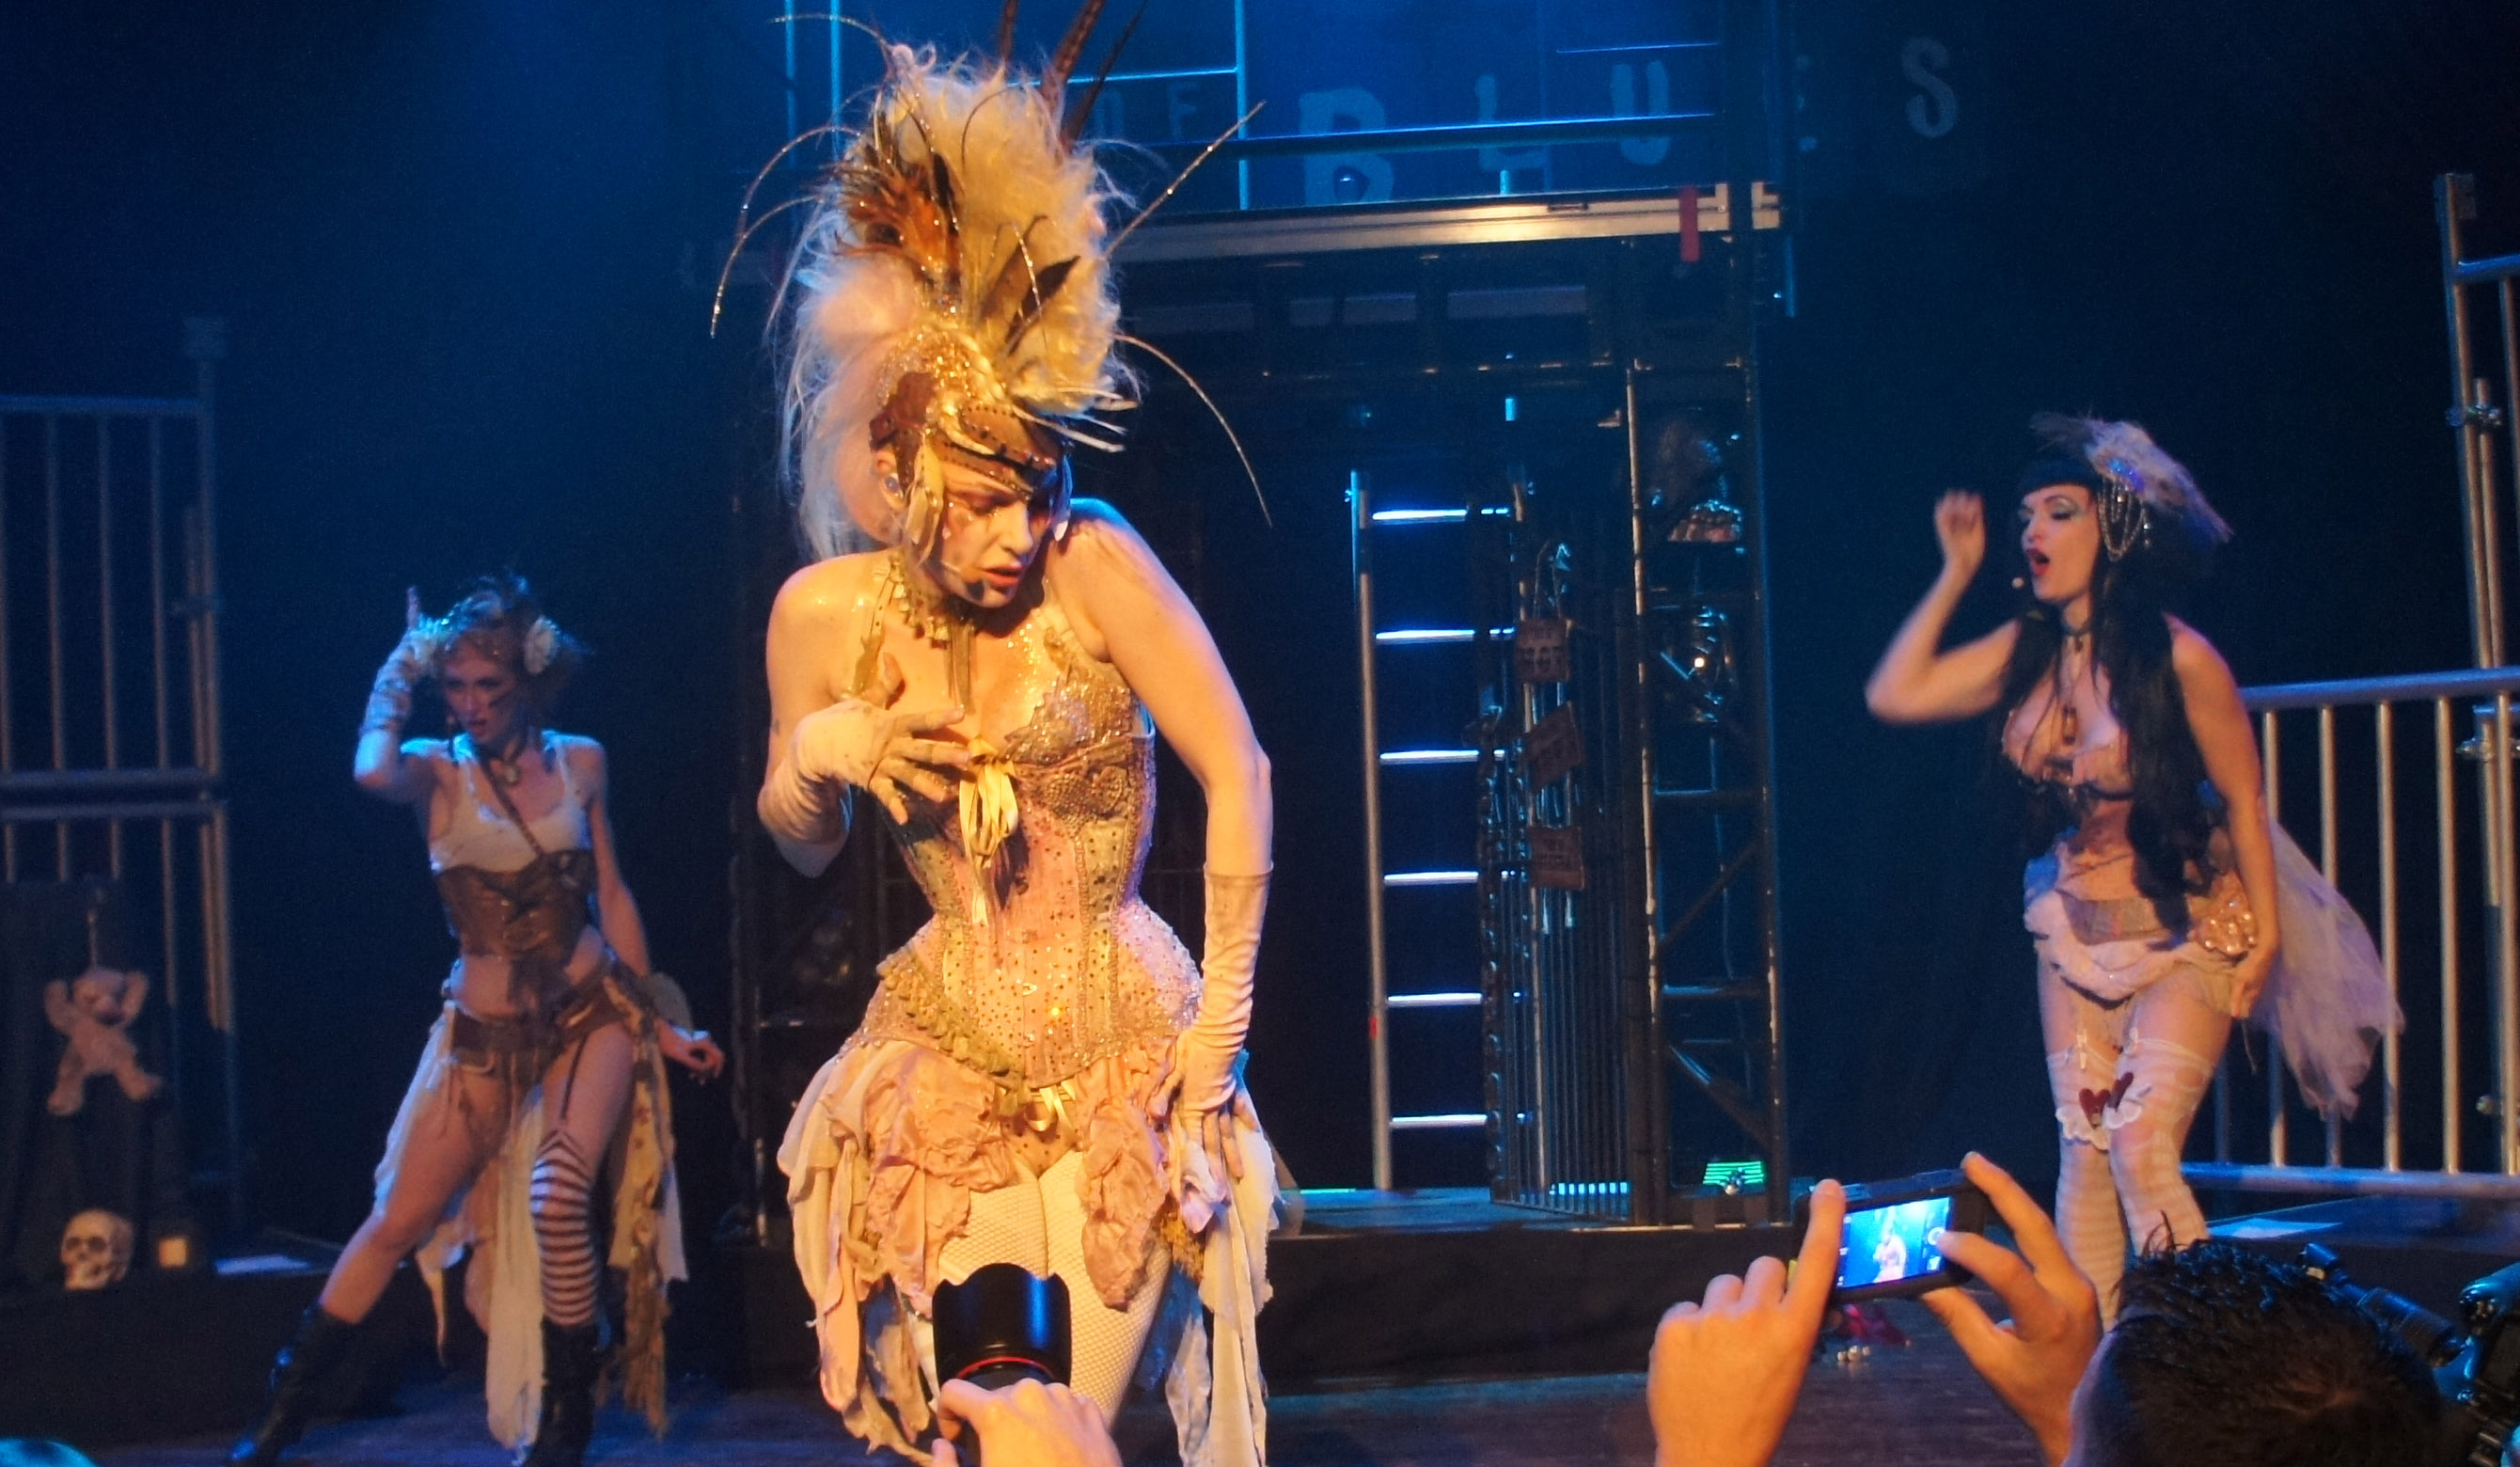 Emilie Autumn (House of Blues, Chicago) 2013